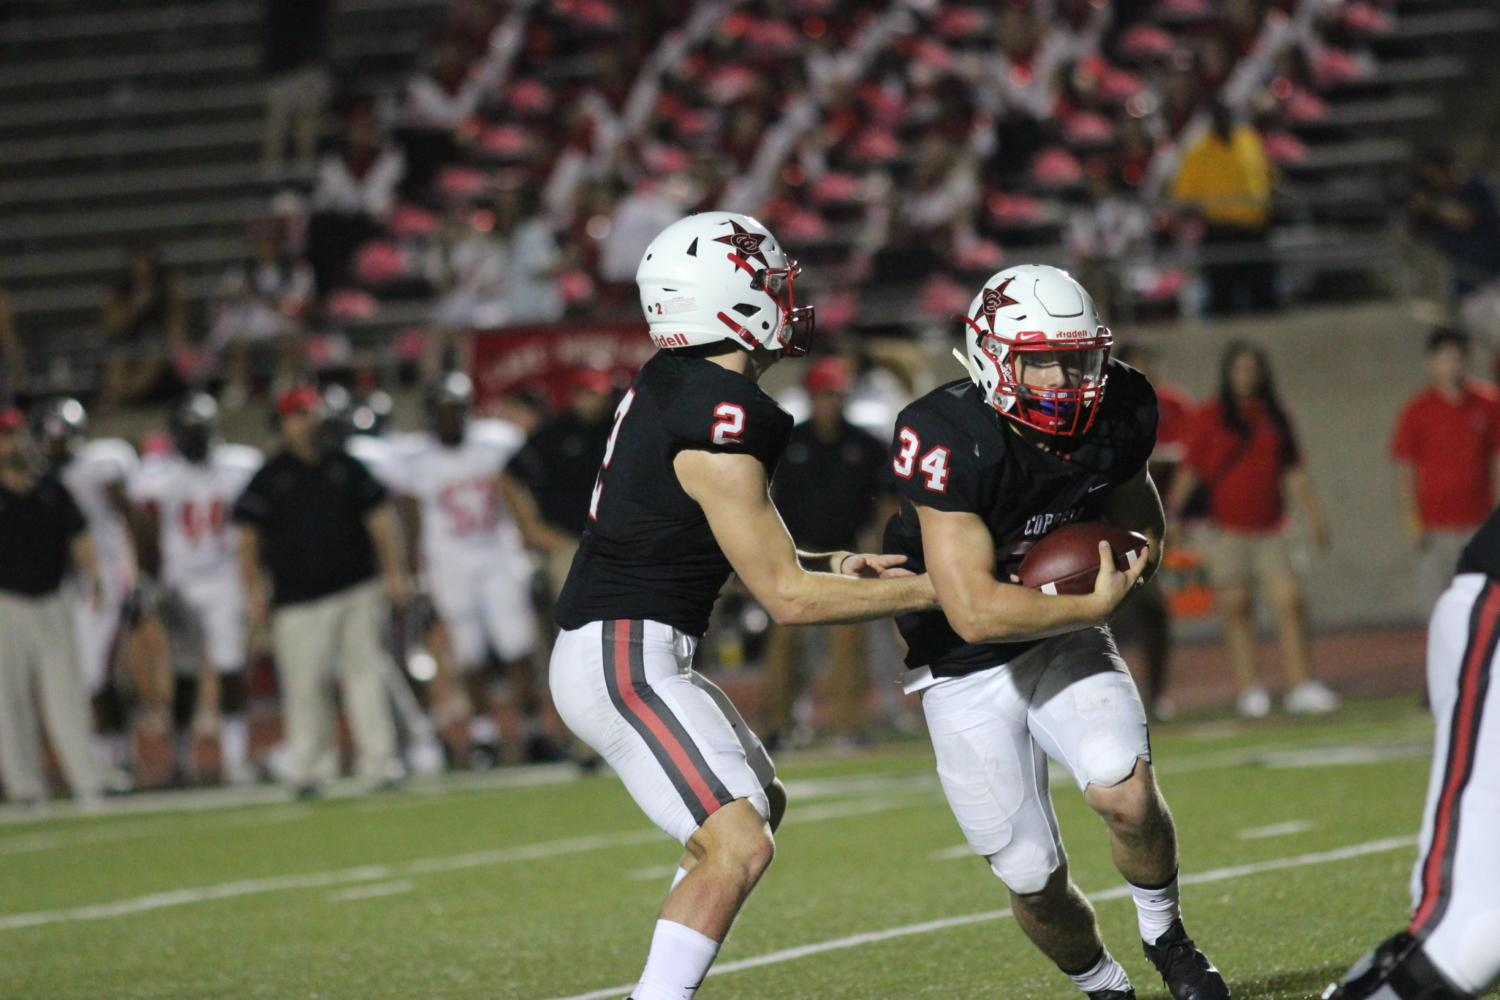 Coppell Cowboys senior quarterback Brady McBride passes the ball to junior running back Ryan Hirt during the fourth quarter of the Homecoming game on Oct. 13 at Buddy Echols Field. The Coppell Cowboys defeated the Lake Highlands Wildcats with a final score of 49-34.